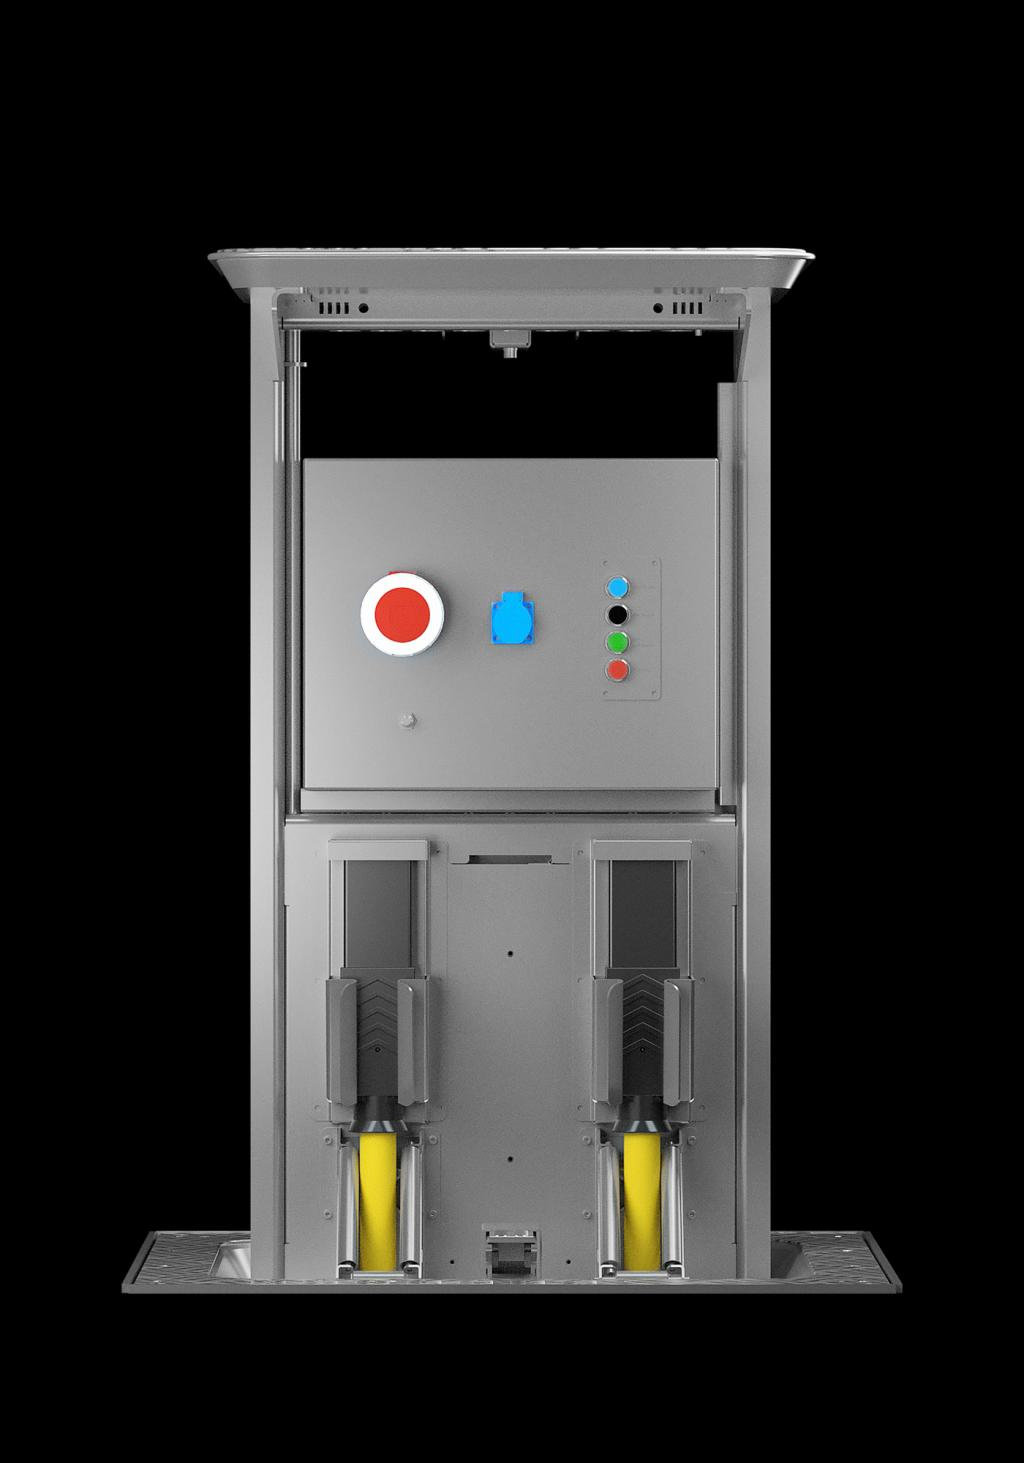 pit system, pop up, pop up pit, 400hz, output cable, customer solutions, 50hz